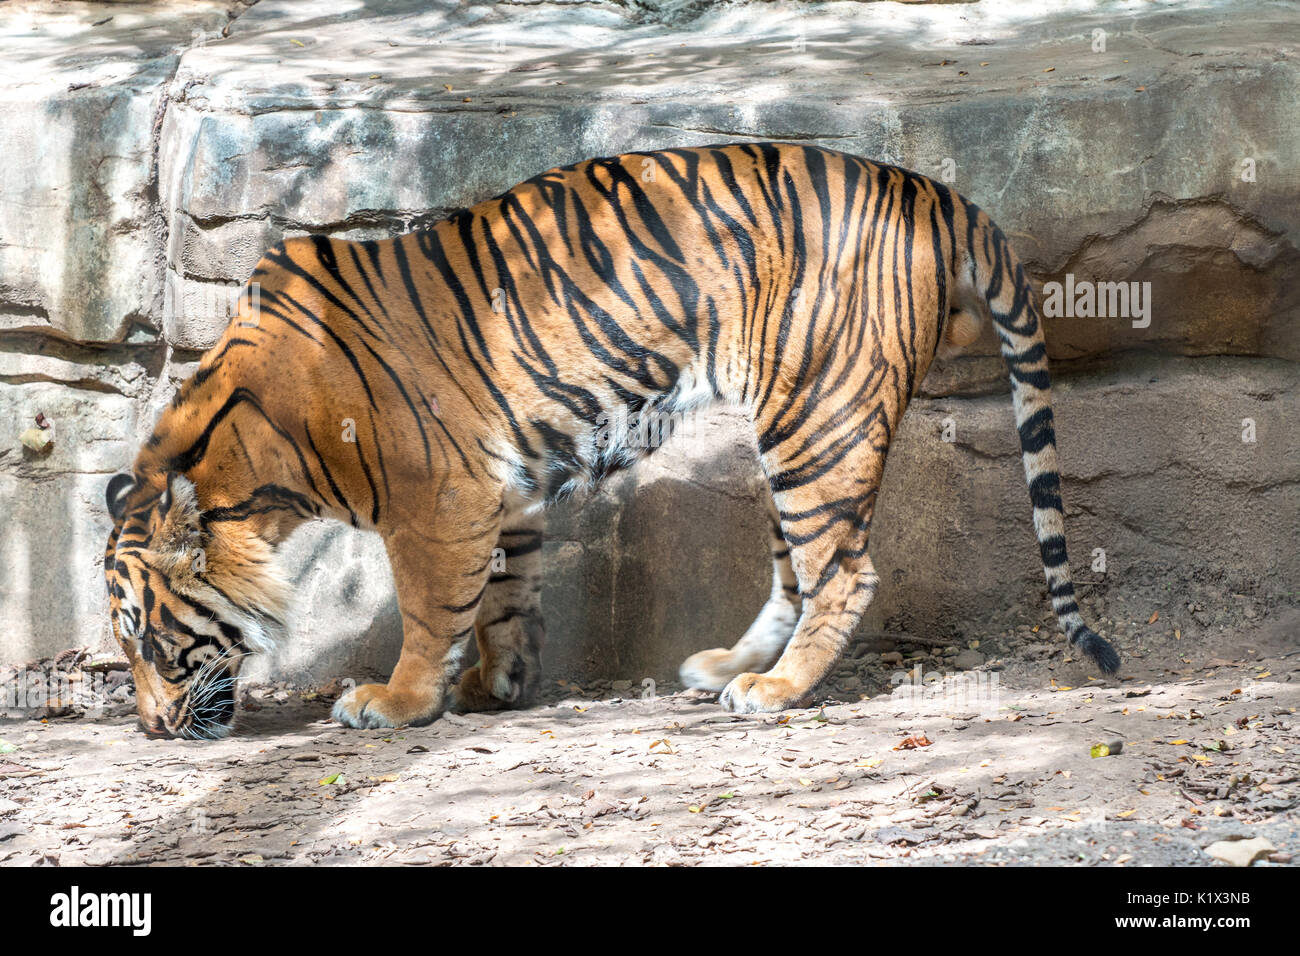 TView of Tiger from the Side While his Head is Down - Stock Image